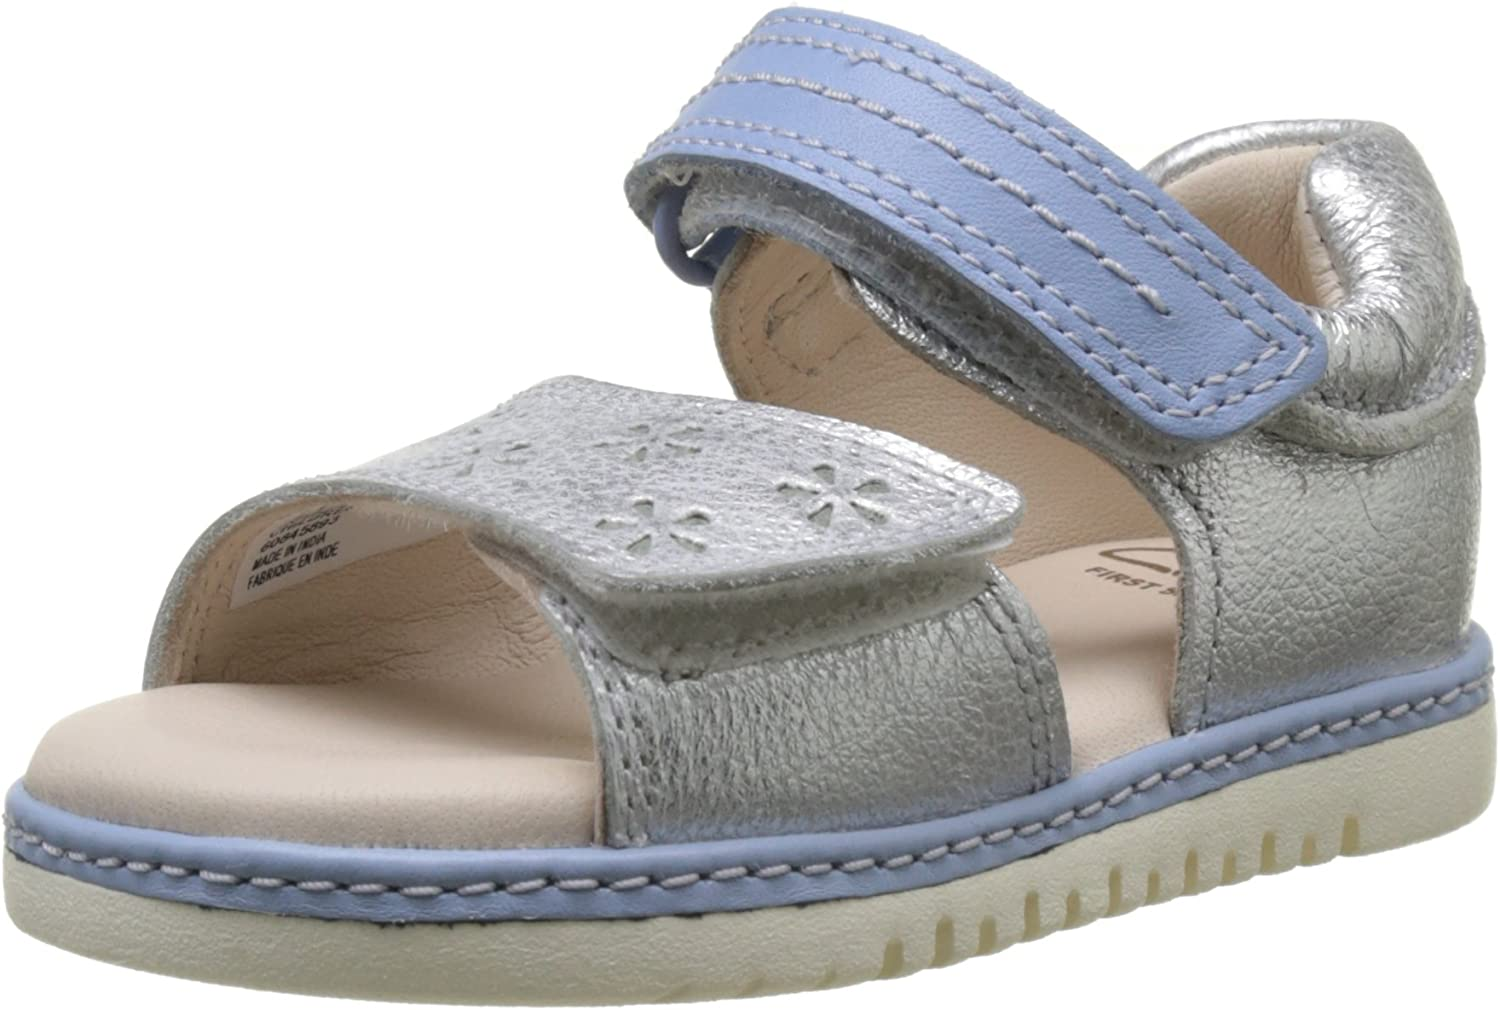 Confidencial Corrupto Insustituible  Clarks Baby Girls Tika Ice FST Walking Shoes: Amazon.co.uk: Shoes & Bags